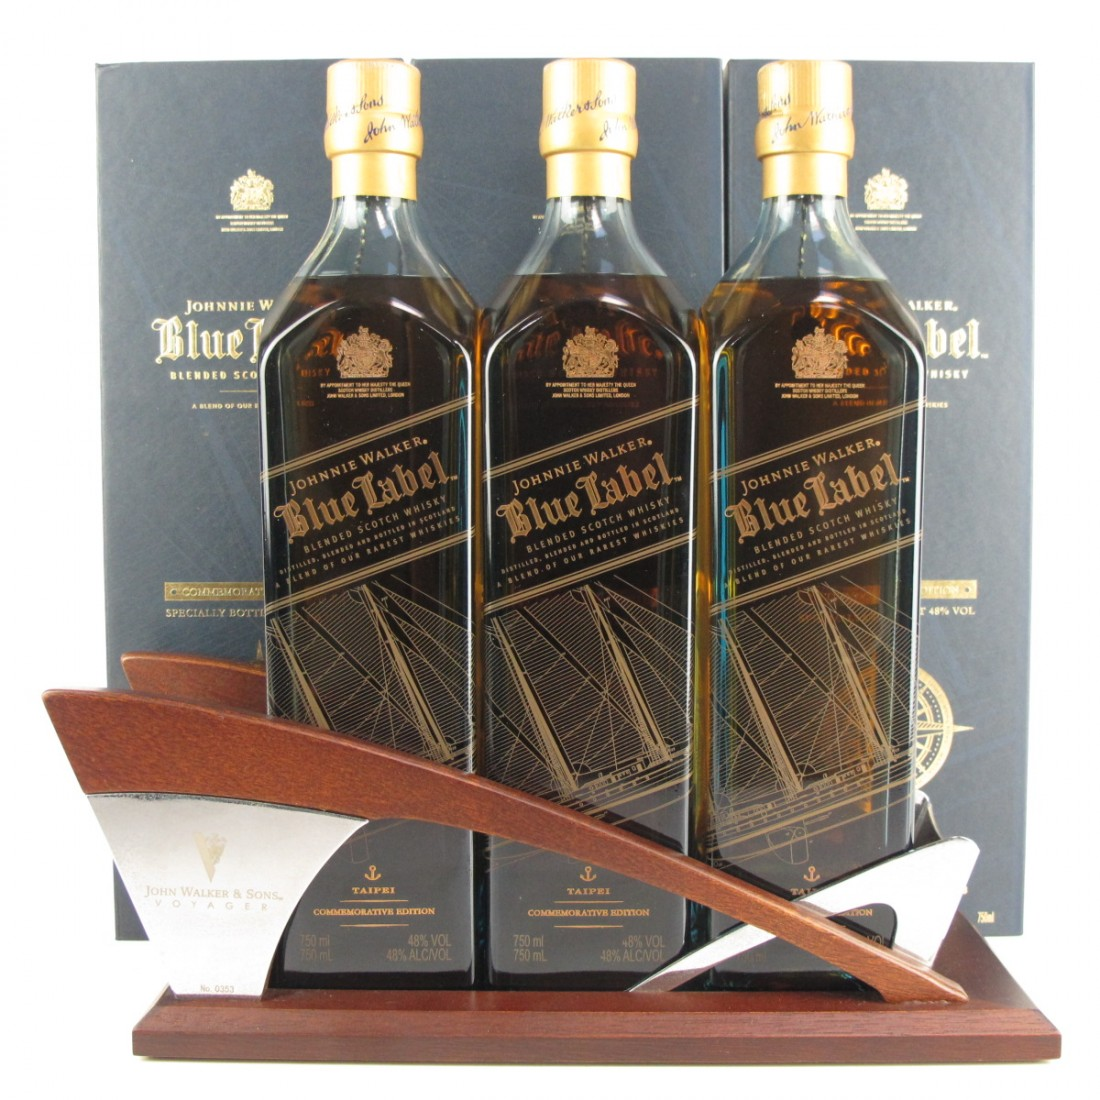 Johnnie Walker Blue Label Voyager Commemoration / Taipei 3 x 75cl Including Display Plinth